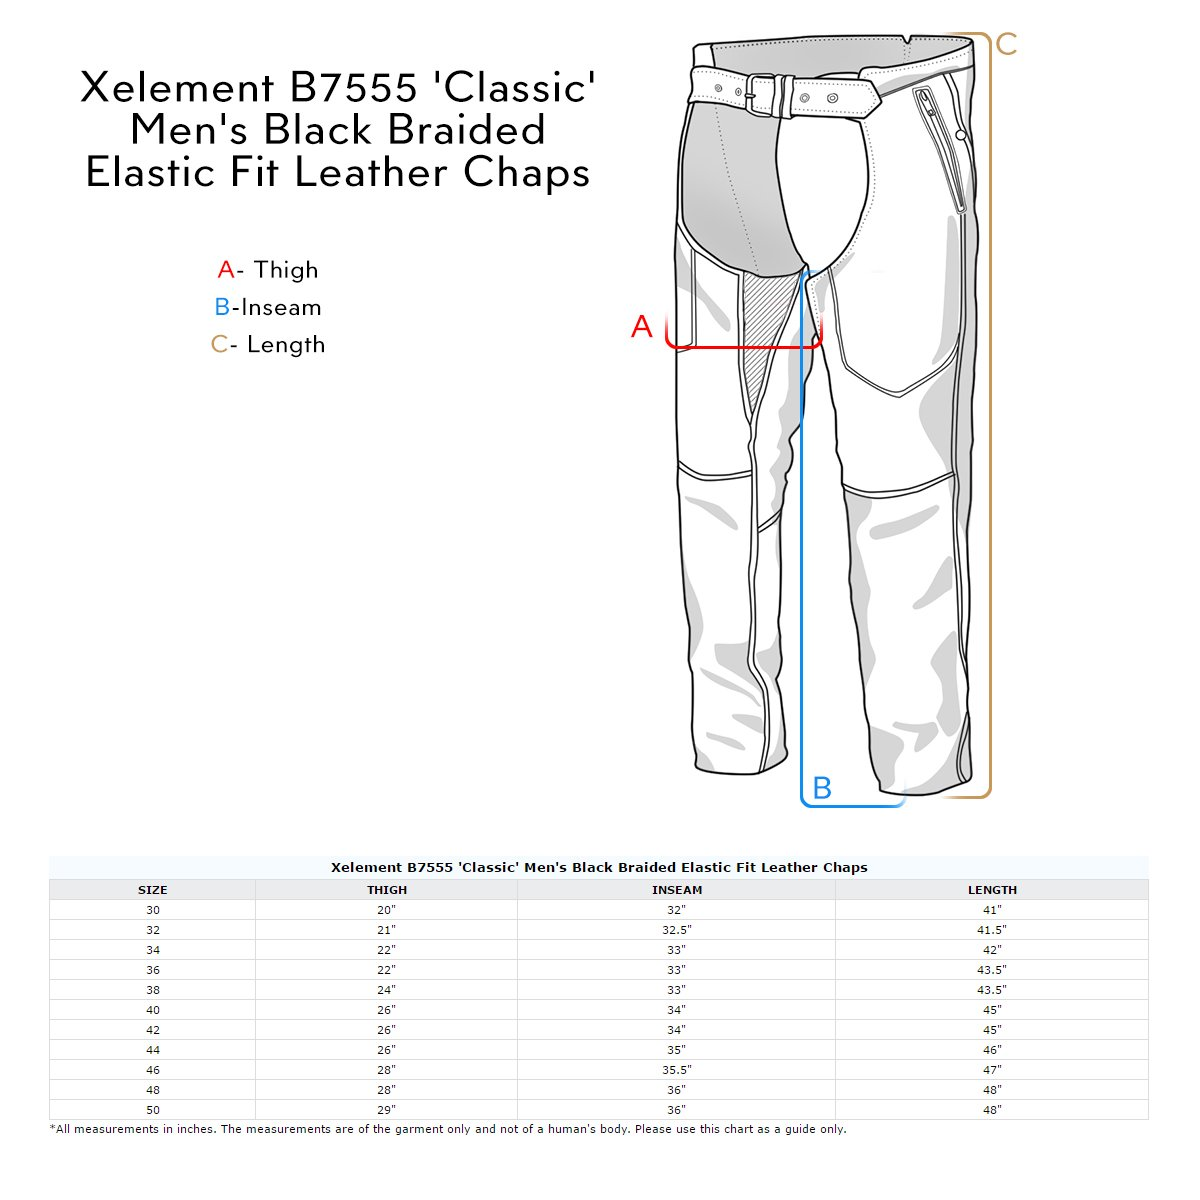 Xelement B7555 Classic Mens Black Braided Elastic Fit Leather Chaps - 40